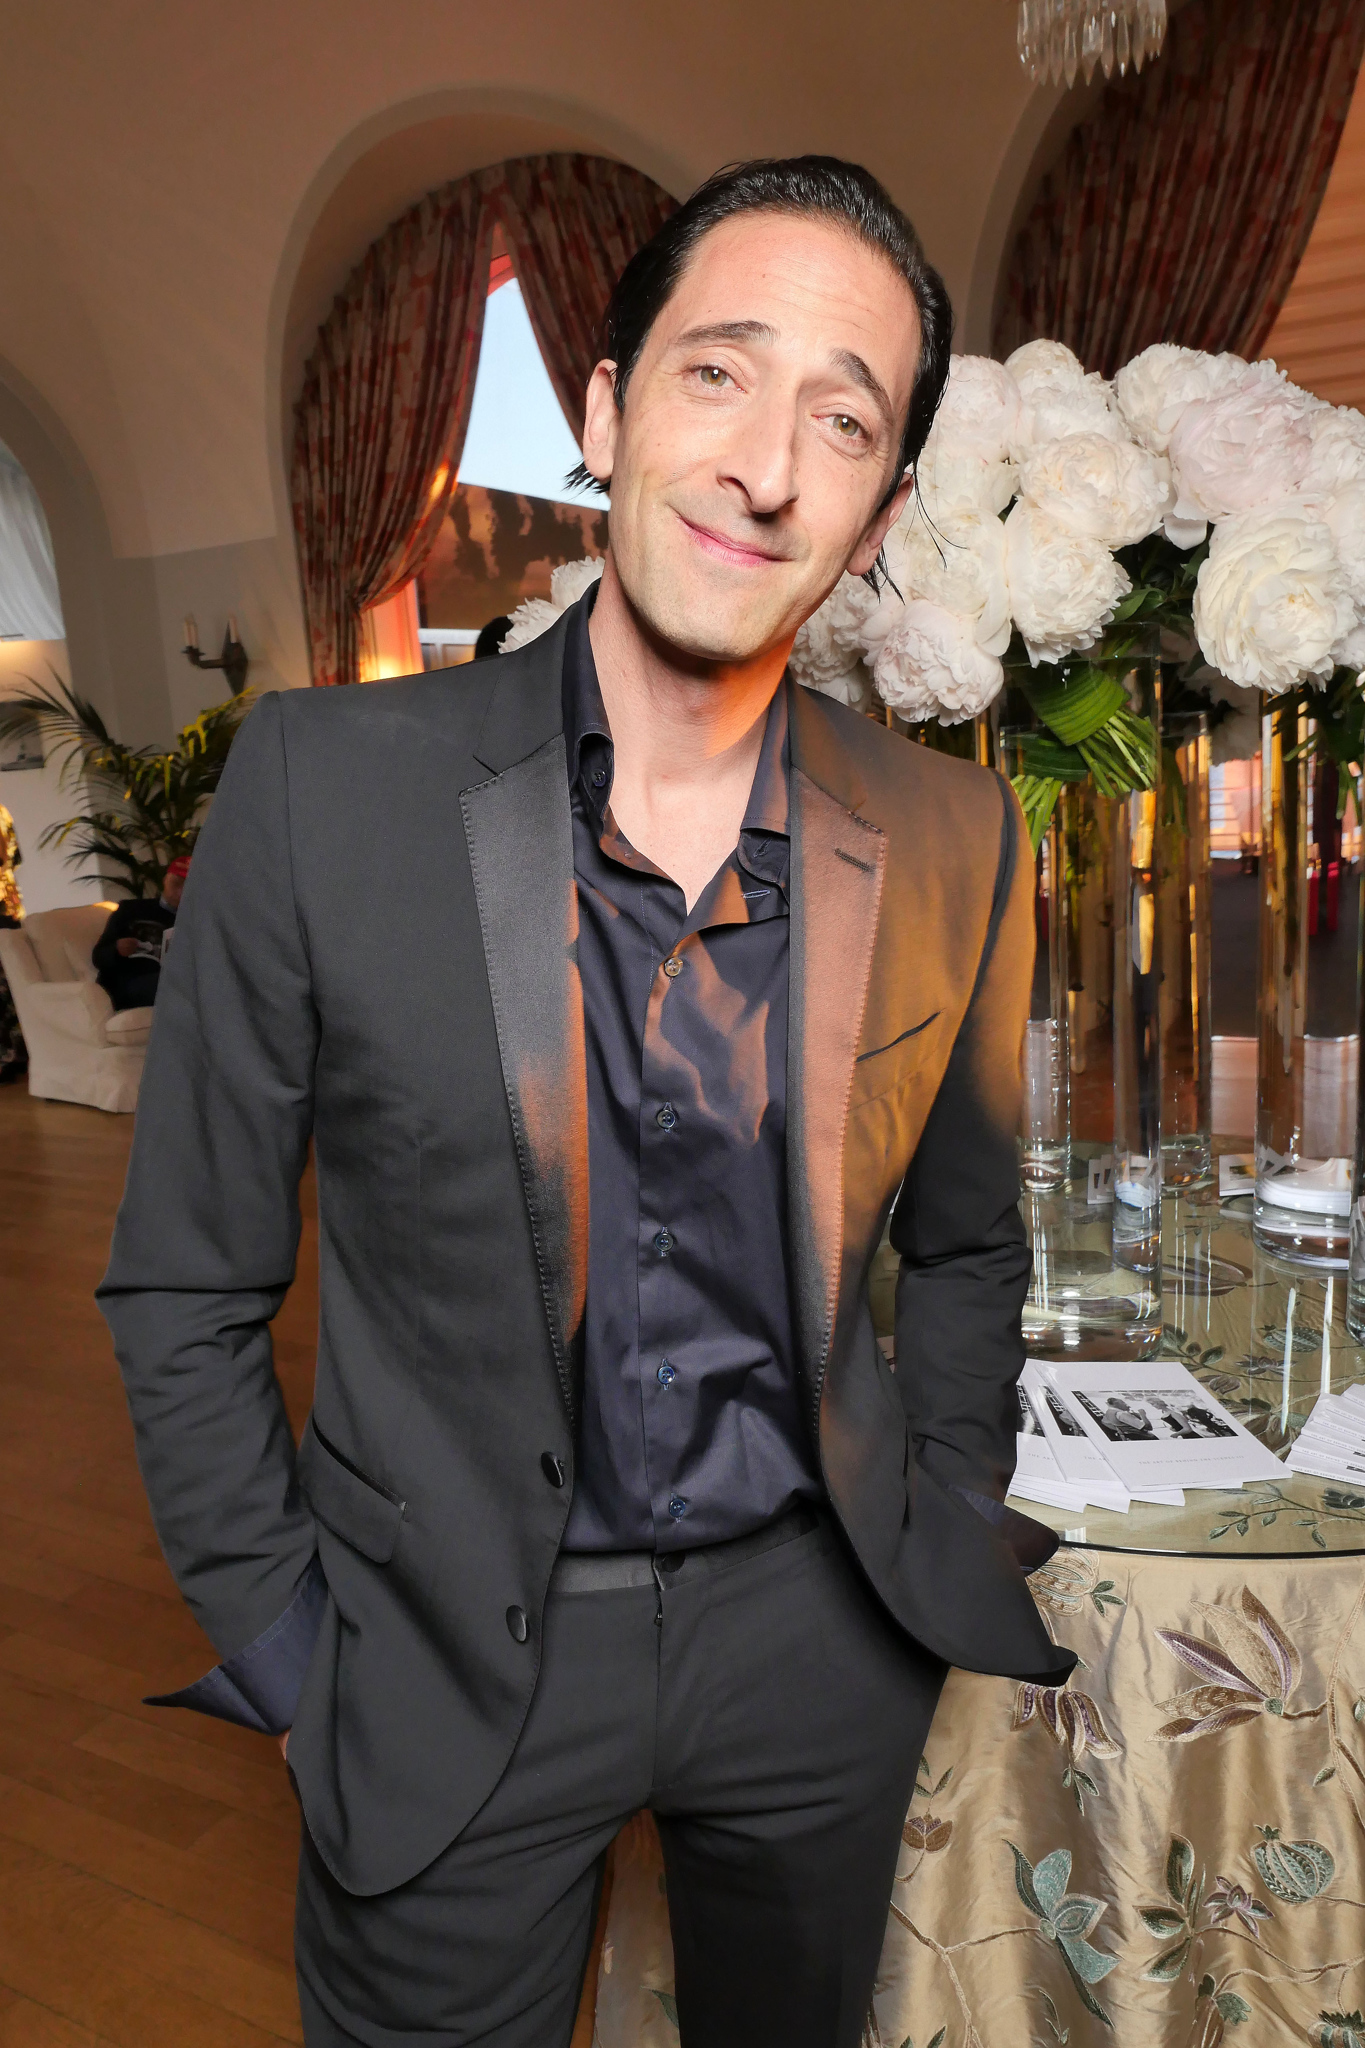 Adrien Brody Exclusive photos of the Charles Finch Filmmakers Party at Cannes